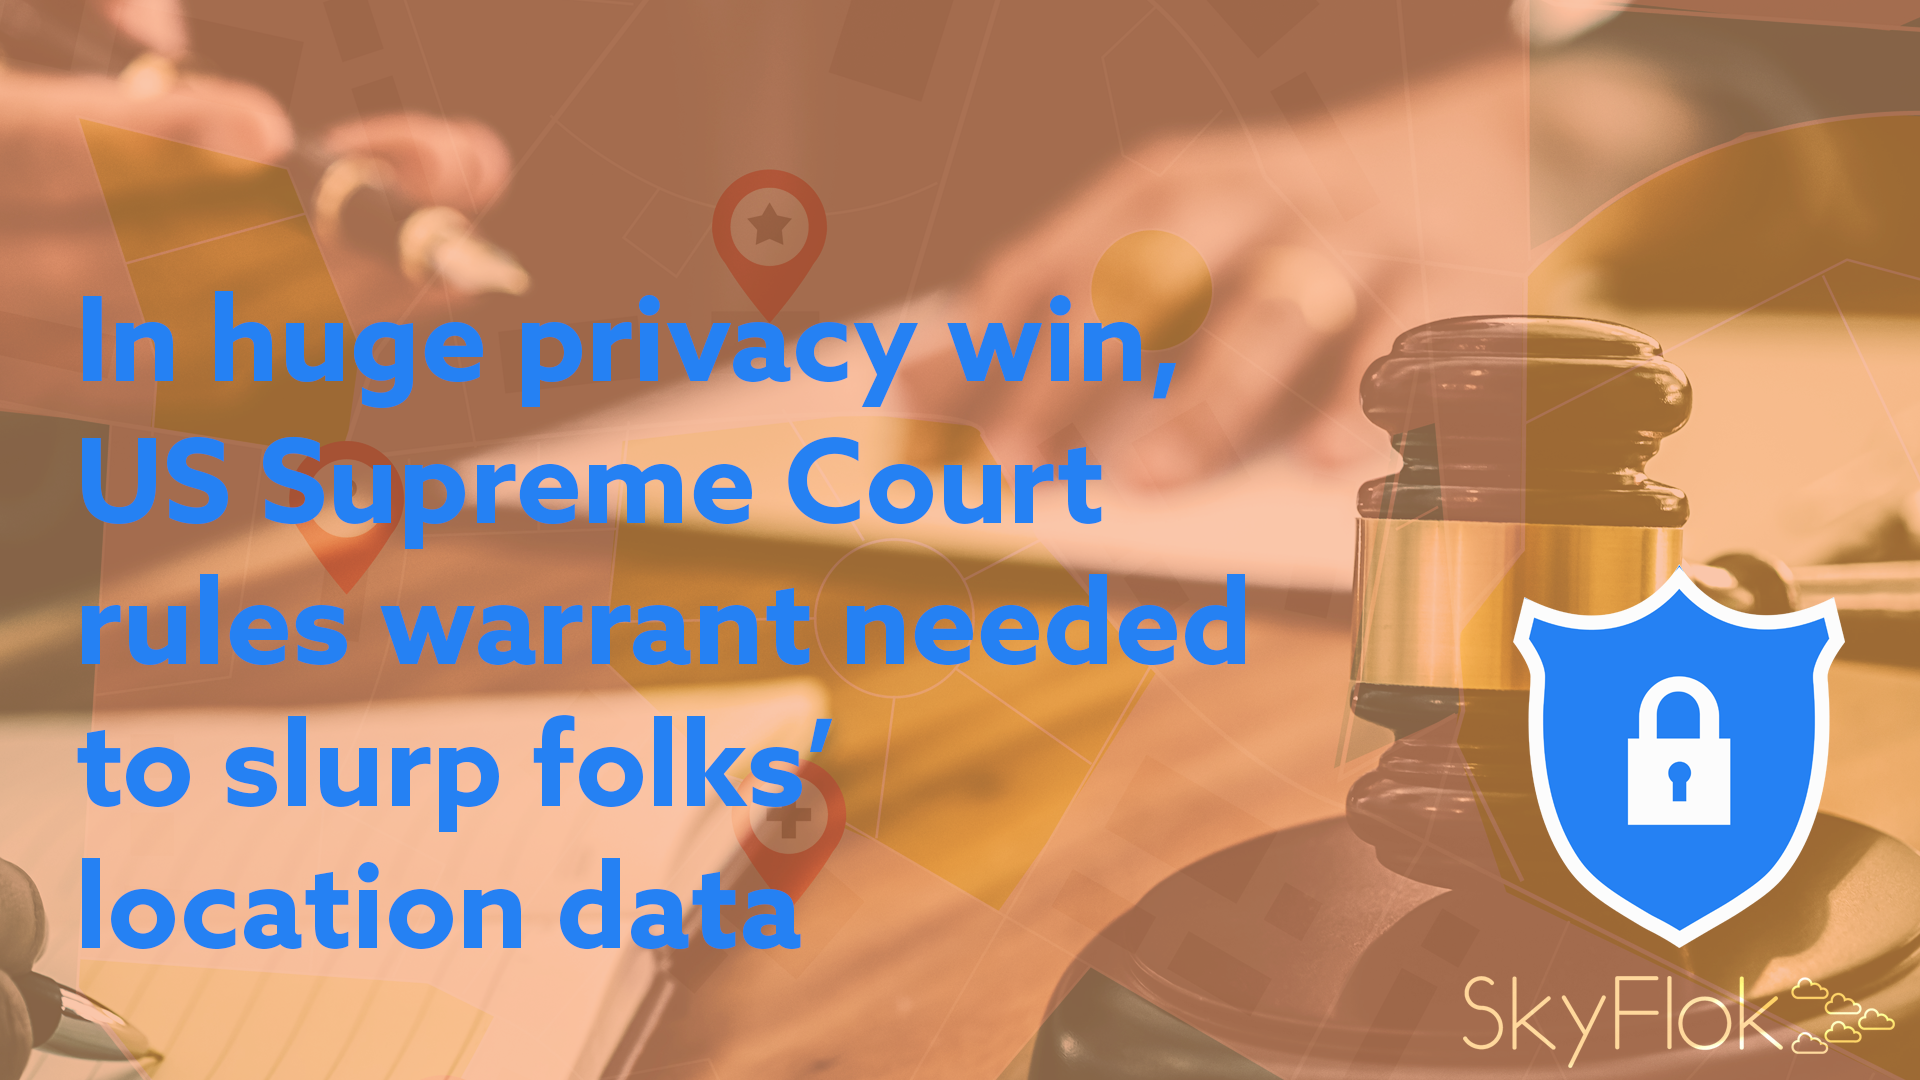 In huge privacy win, US Supreme Court rules warrant needed to slurp folks' location data